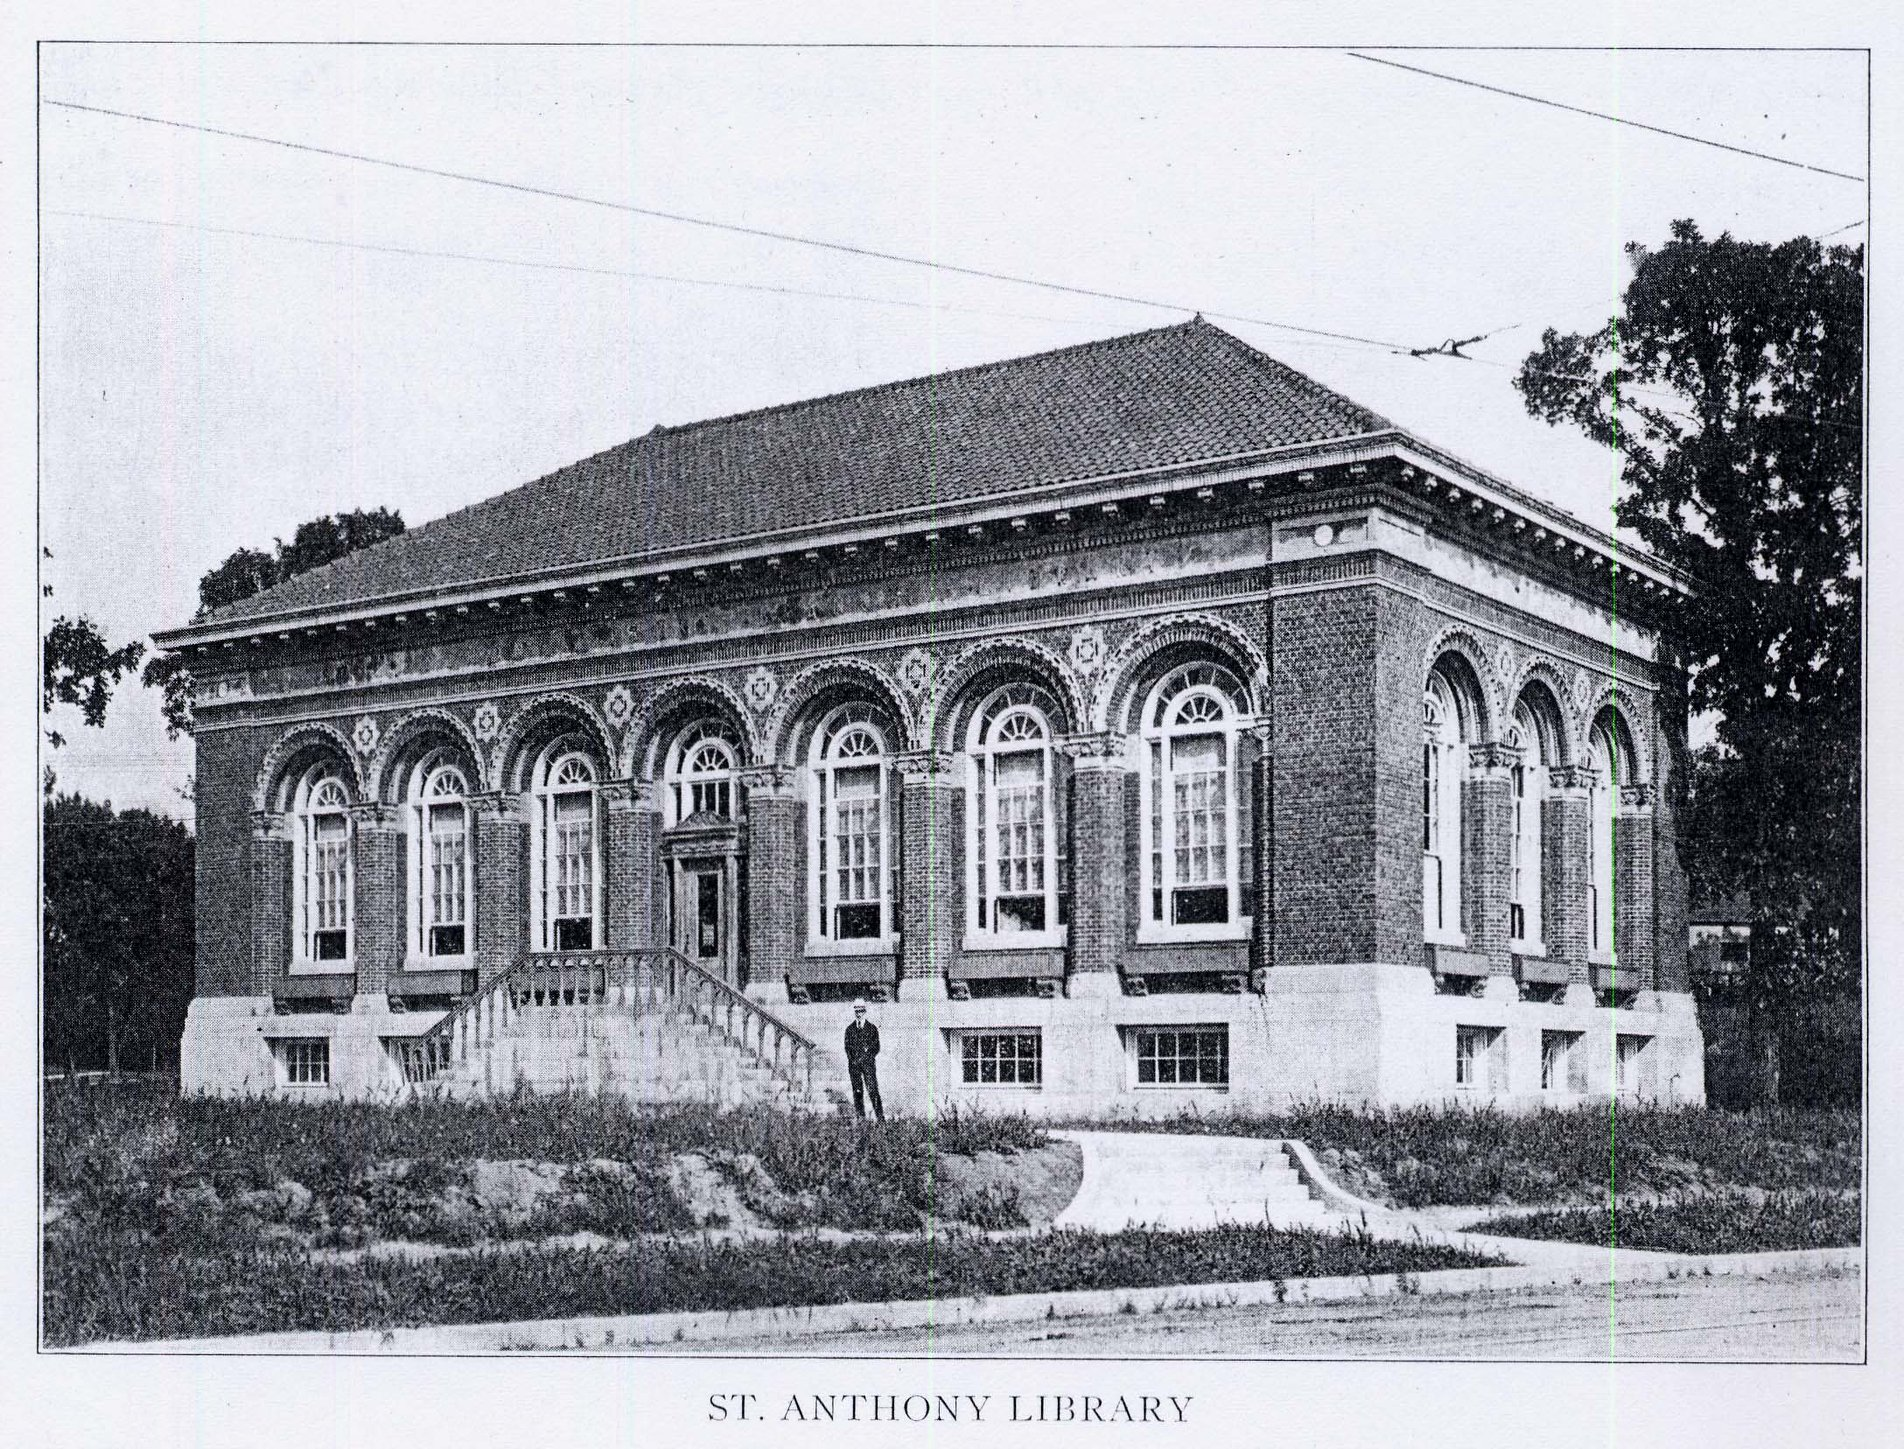 10_st.anthony Library.jpg